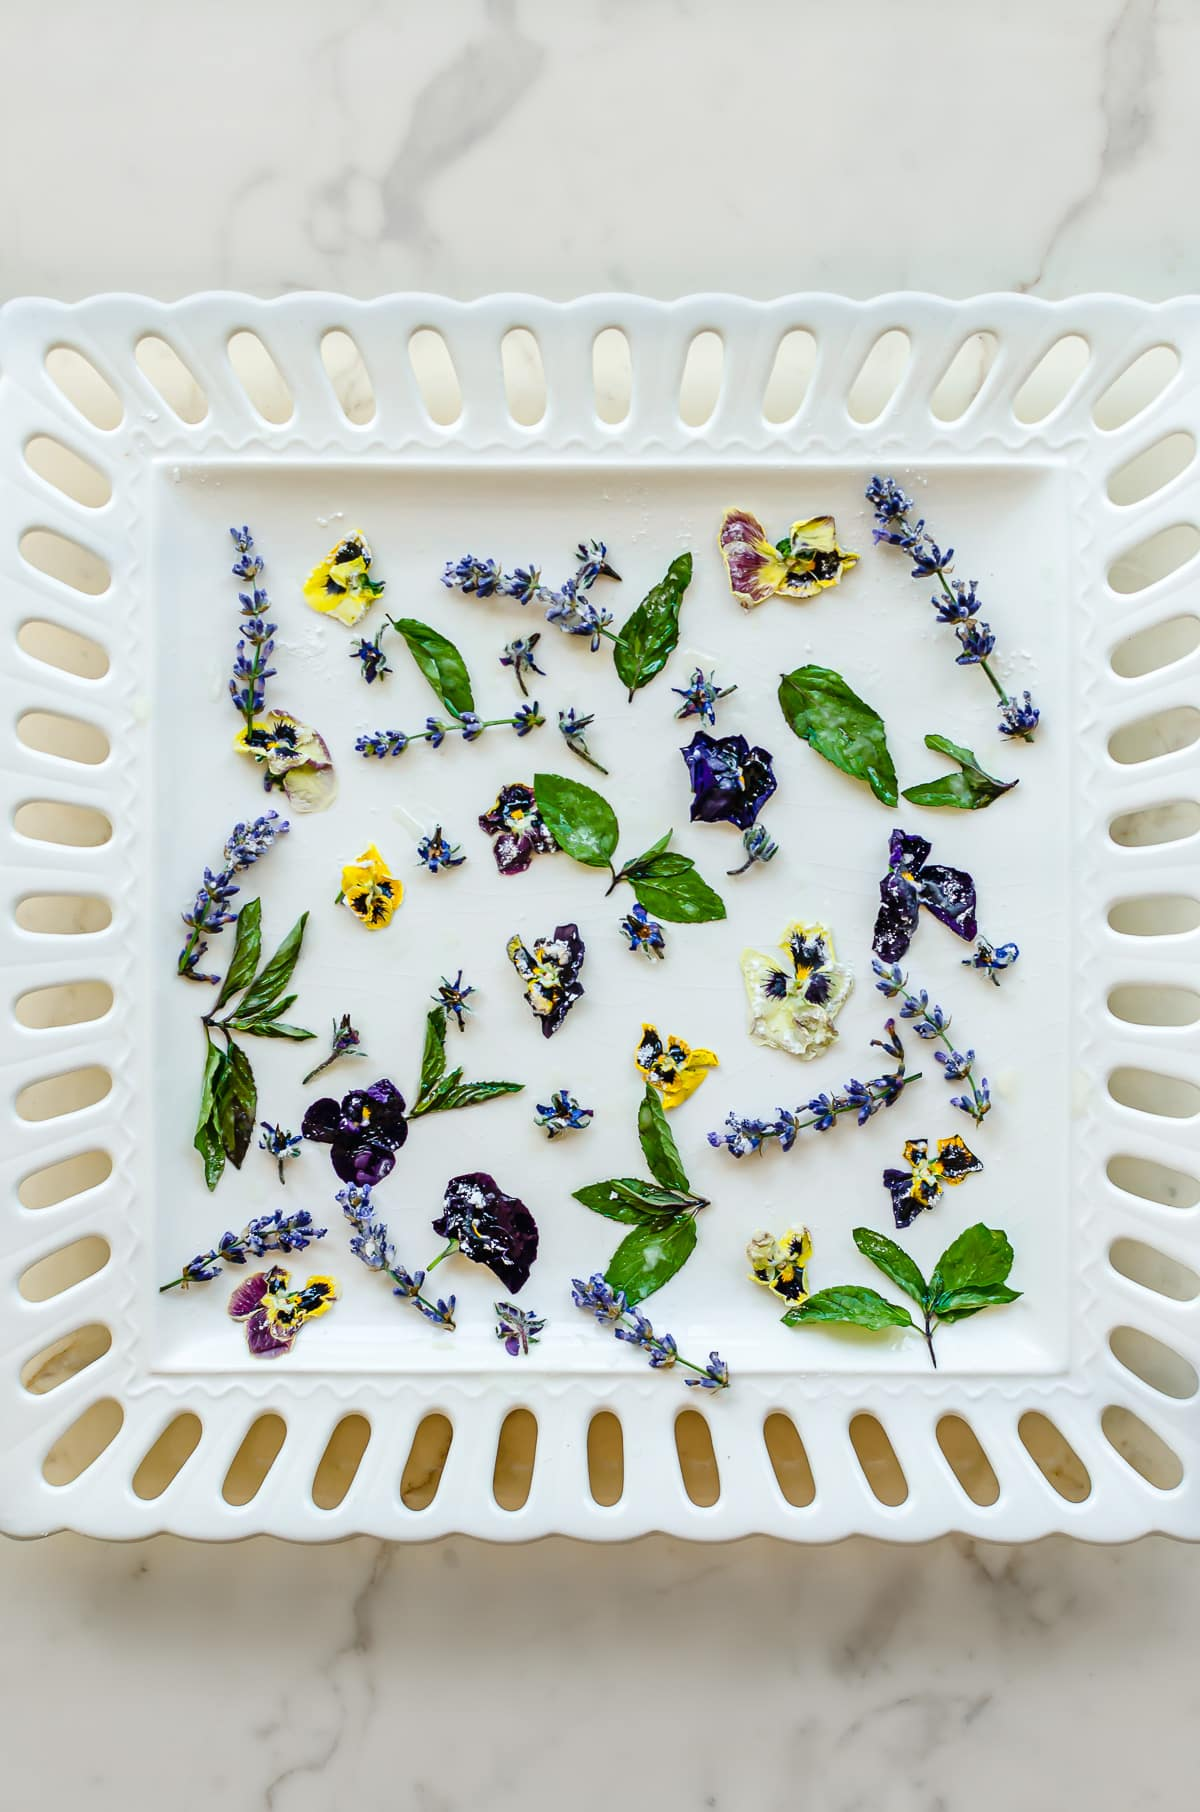 Candied edible mint, lavender, and pansies on a white plate.